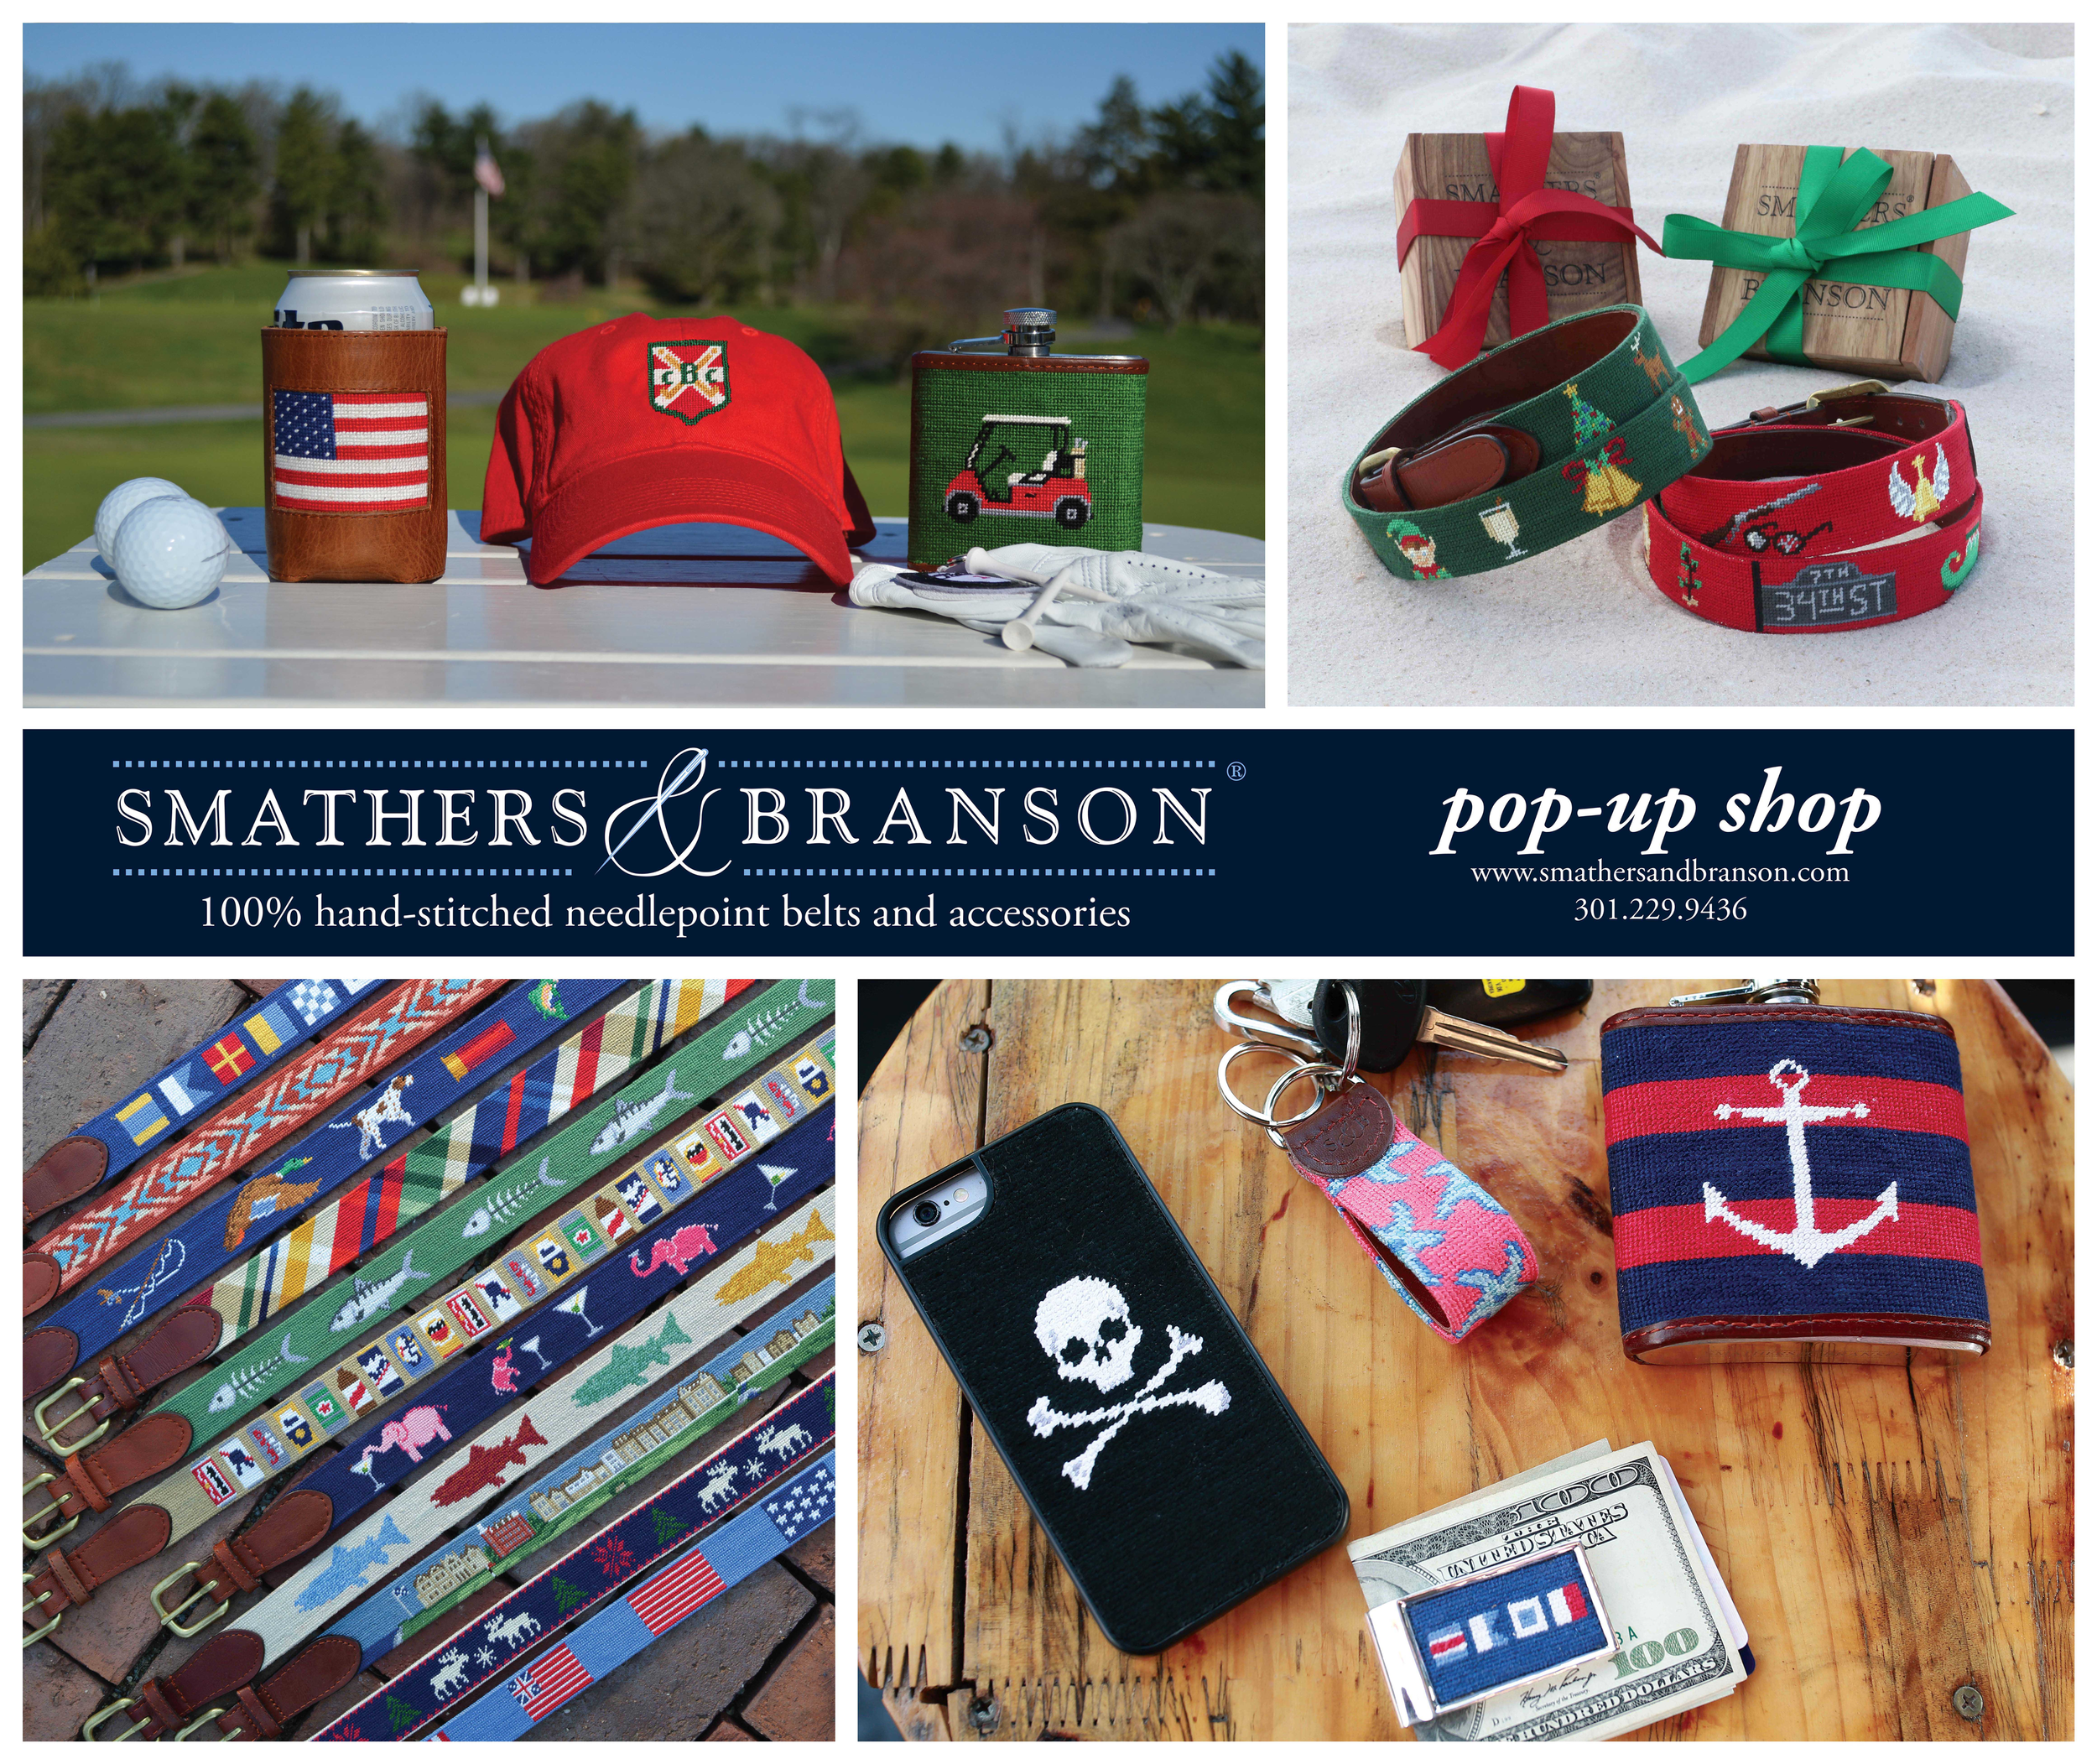 Smathers & Branson Window Cling for Retail Store